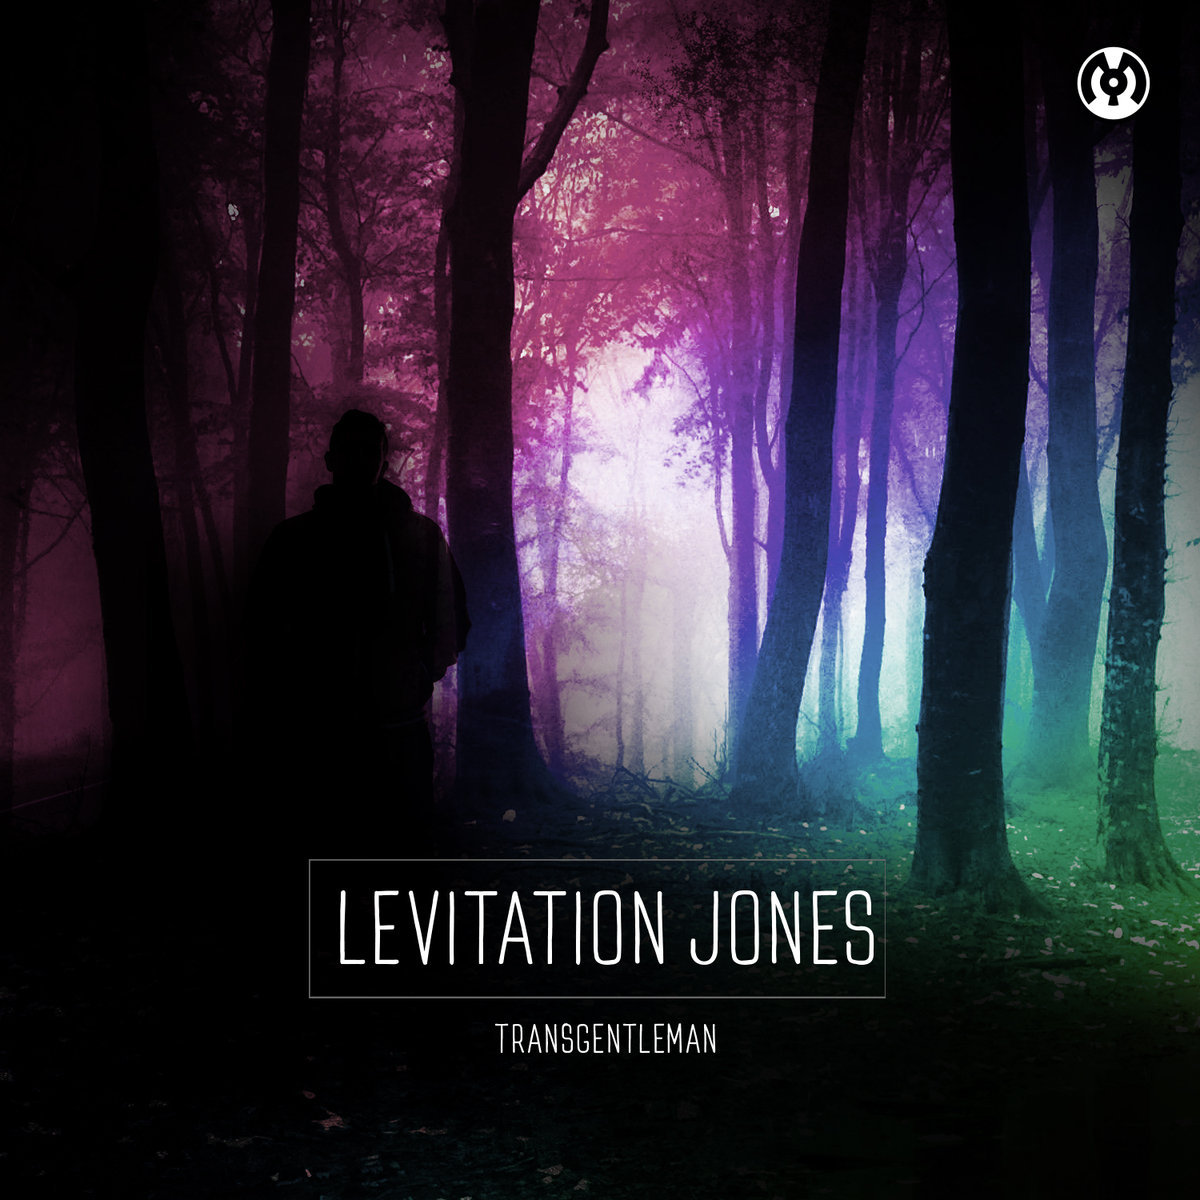 Levitation Jones - Moon Man @ 'Transgentleman' album (electronic, dubstep)